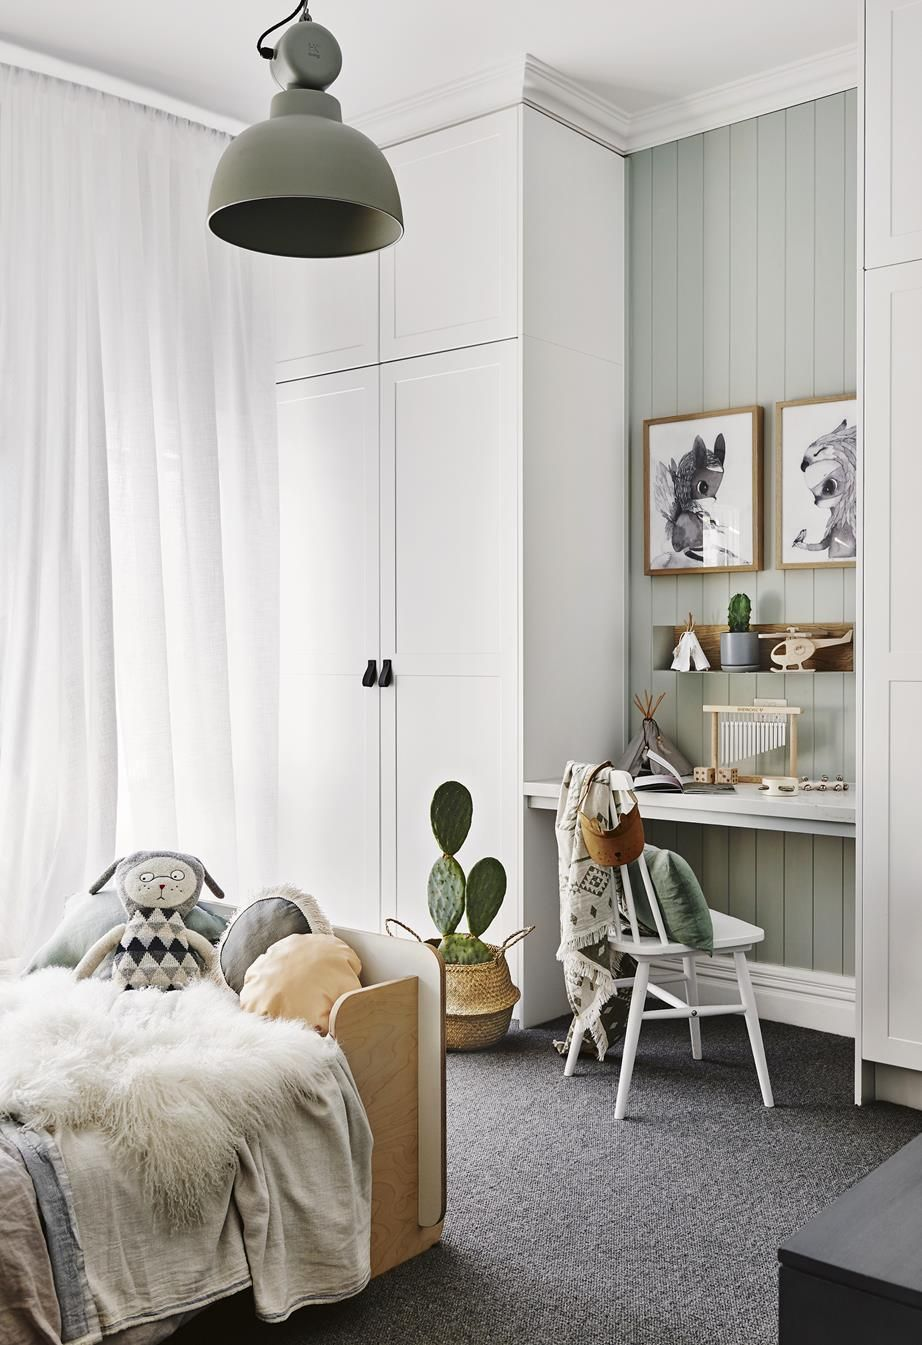 3 Home Decor Trends For Spring Brittany Stager: This Renovated Home Is A Lesson In Perfecting Scandi Style